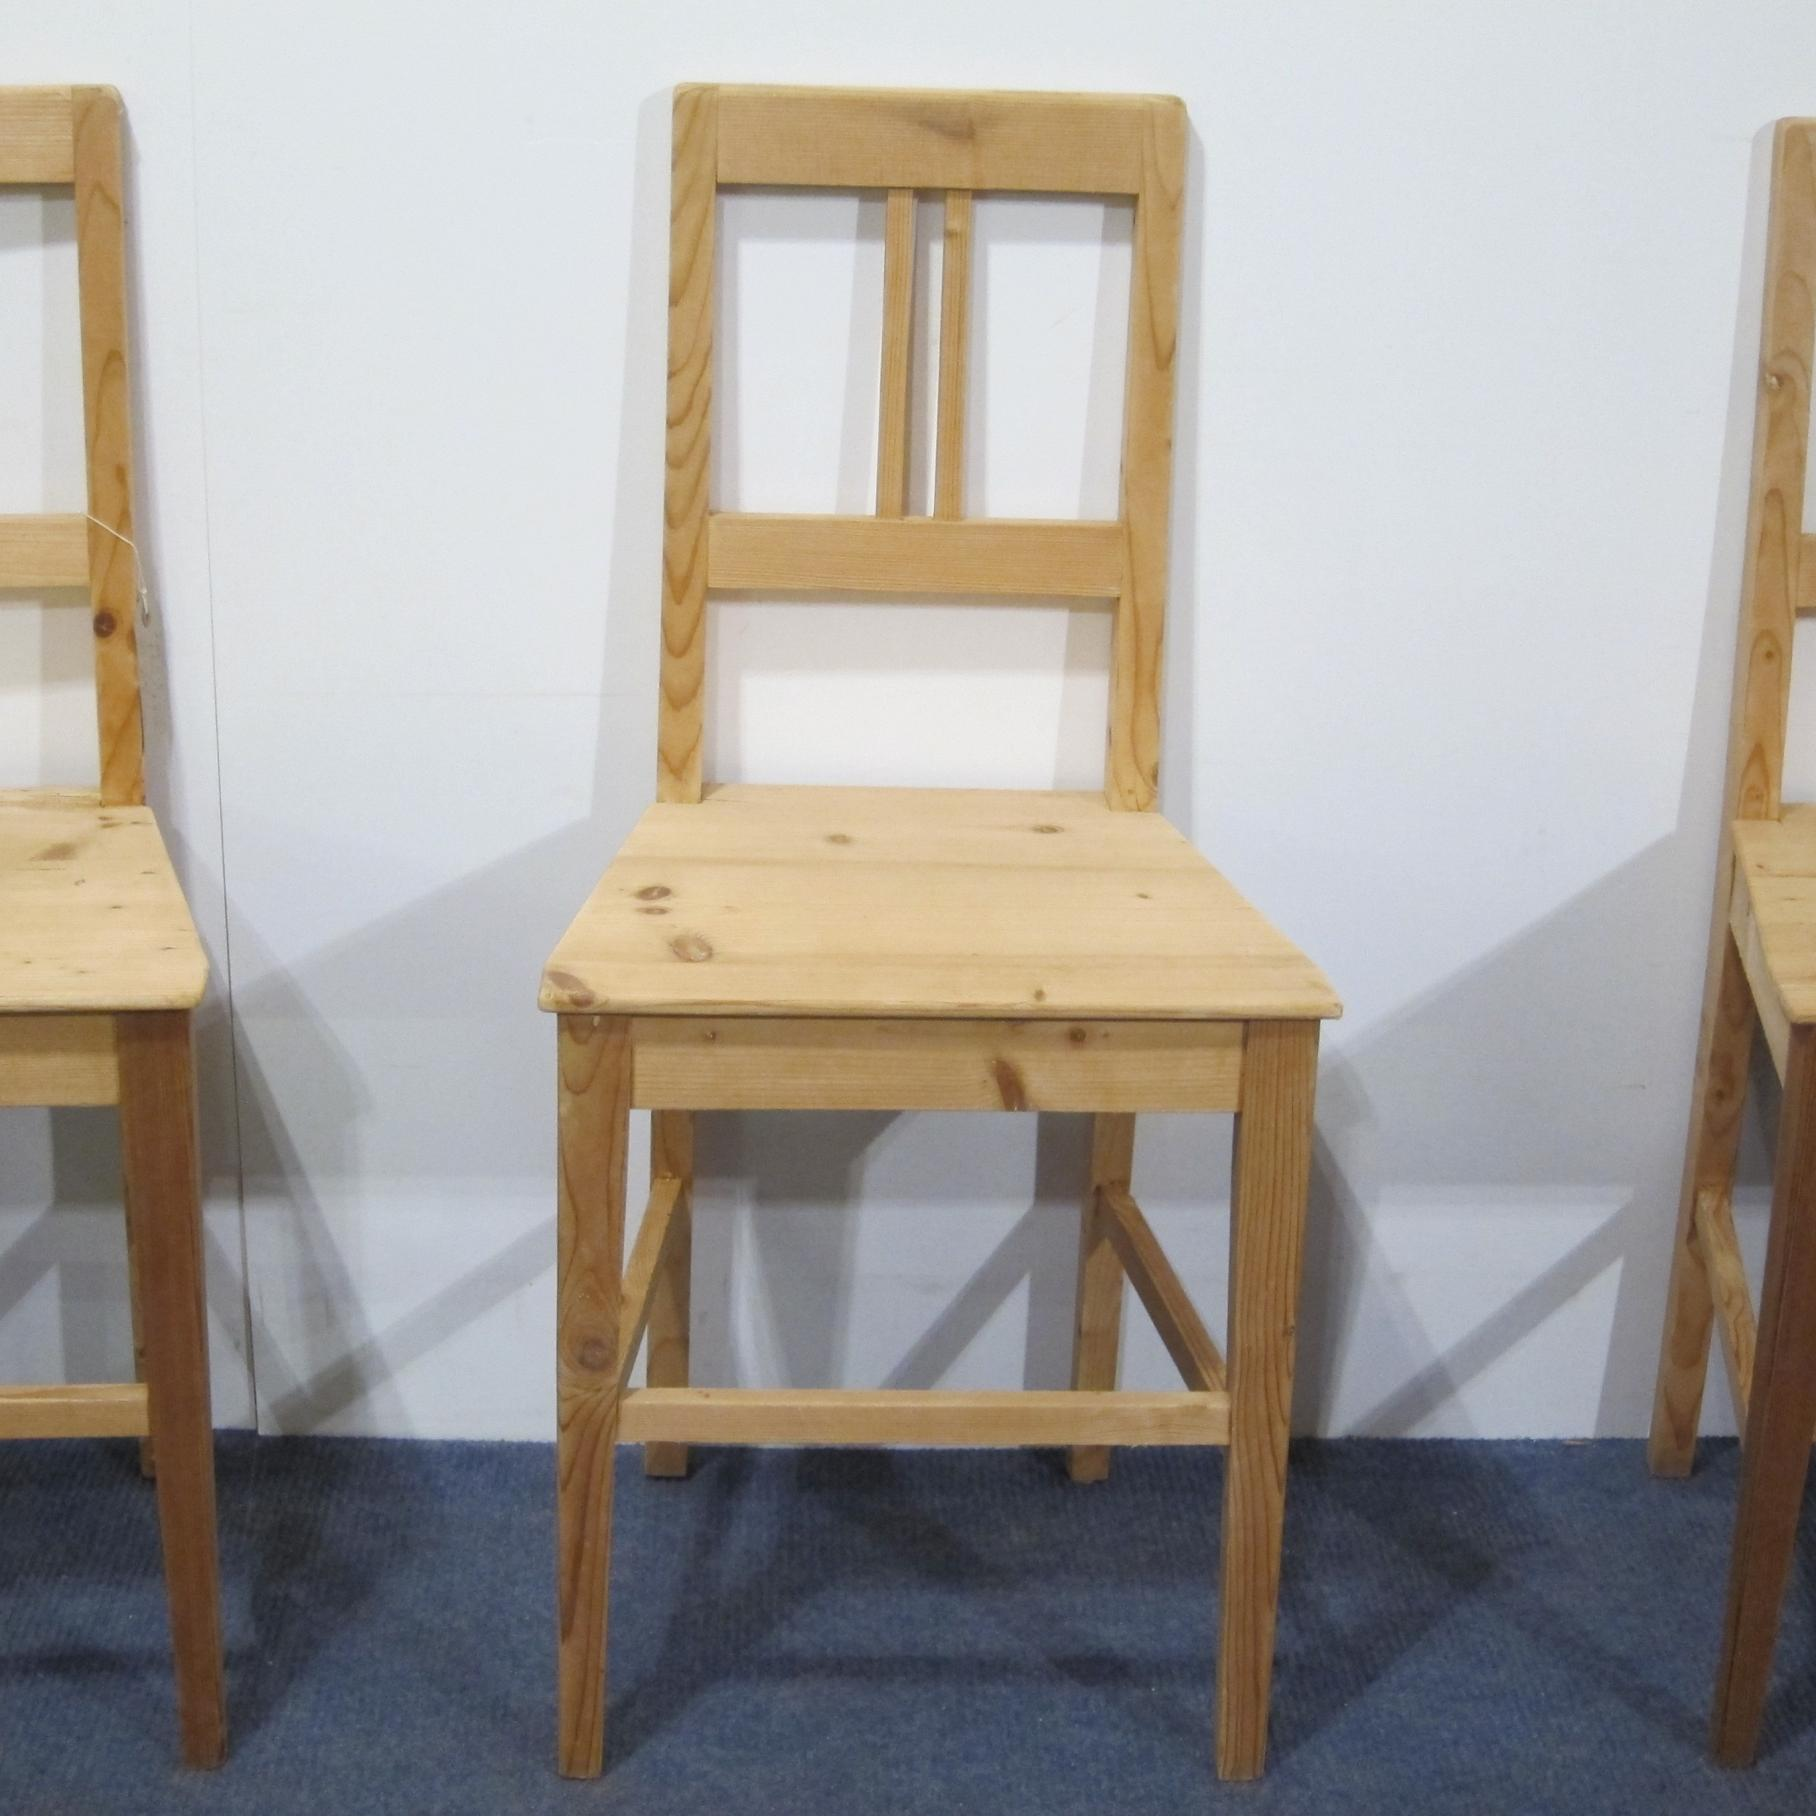 Antique farmhouse kitchen dining room chairs c1920s for Kitchen dining room chairs